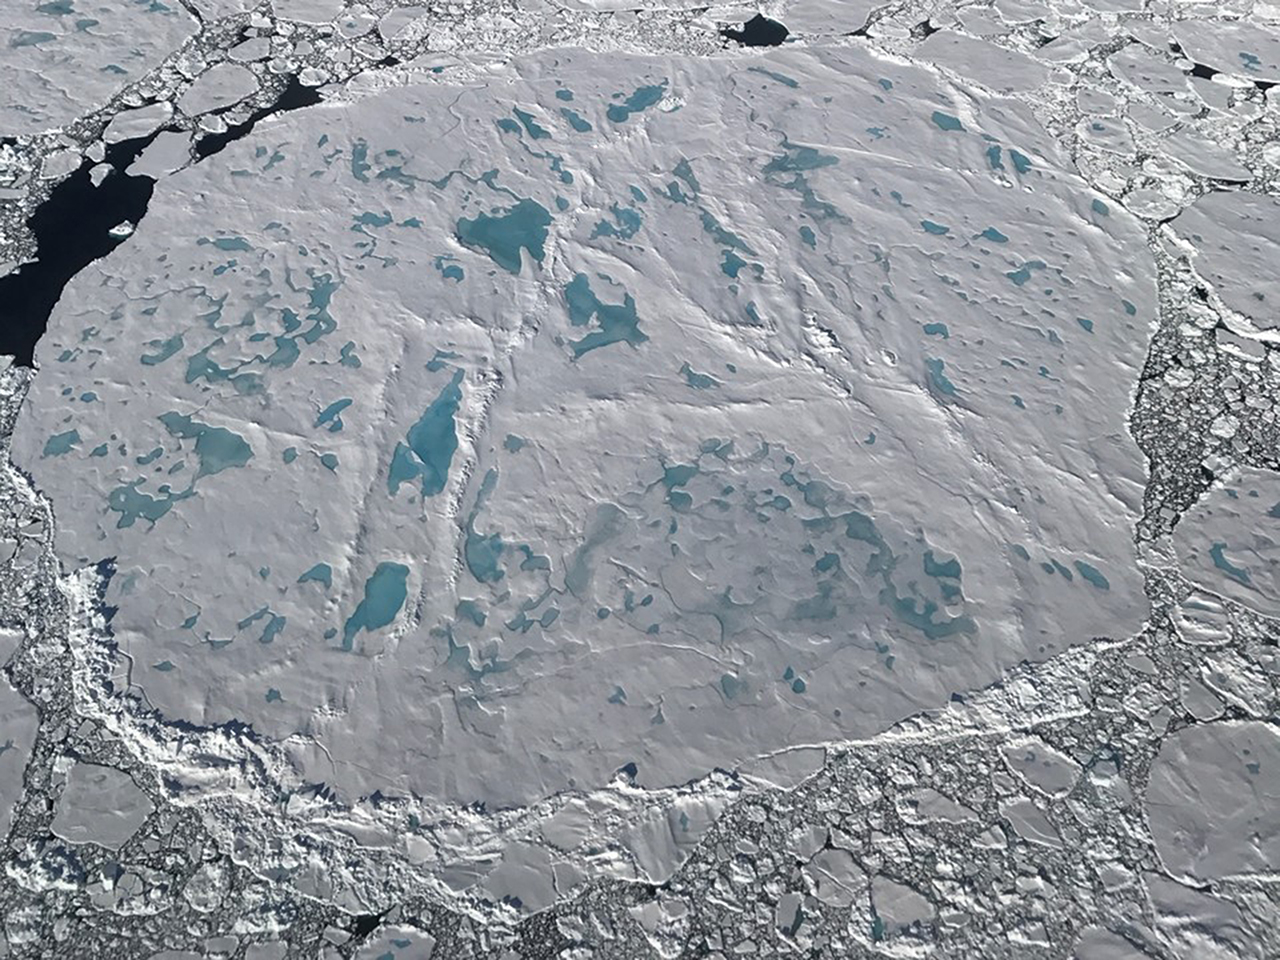 A large circular sea ice floe covered with melt ponds and surrounded by smaller floes, as seen from an Operation IceBridge flight on July 17, 2017.